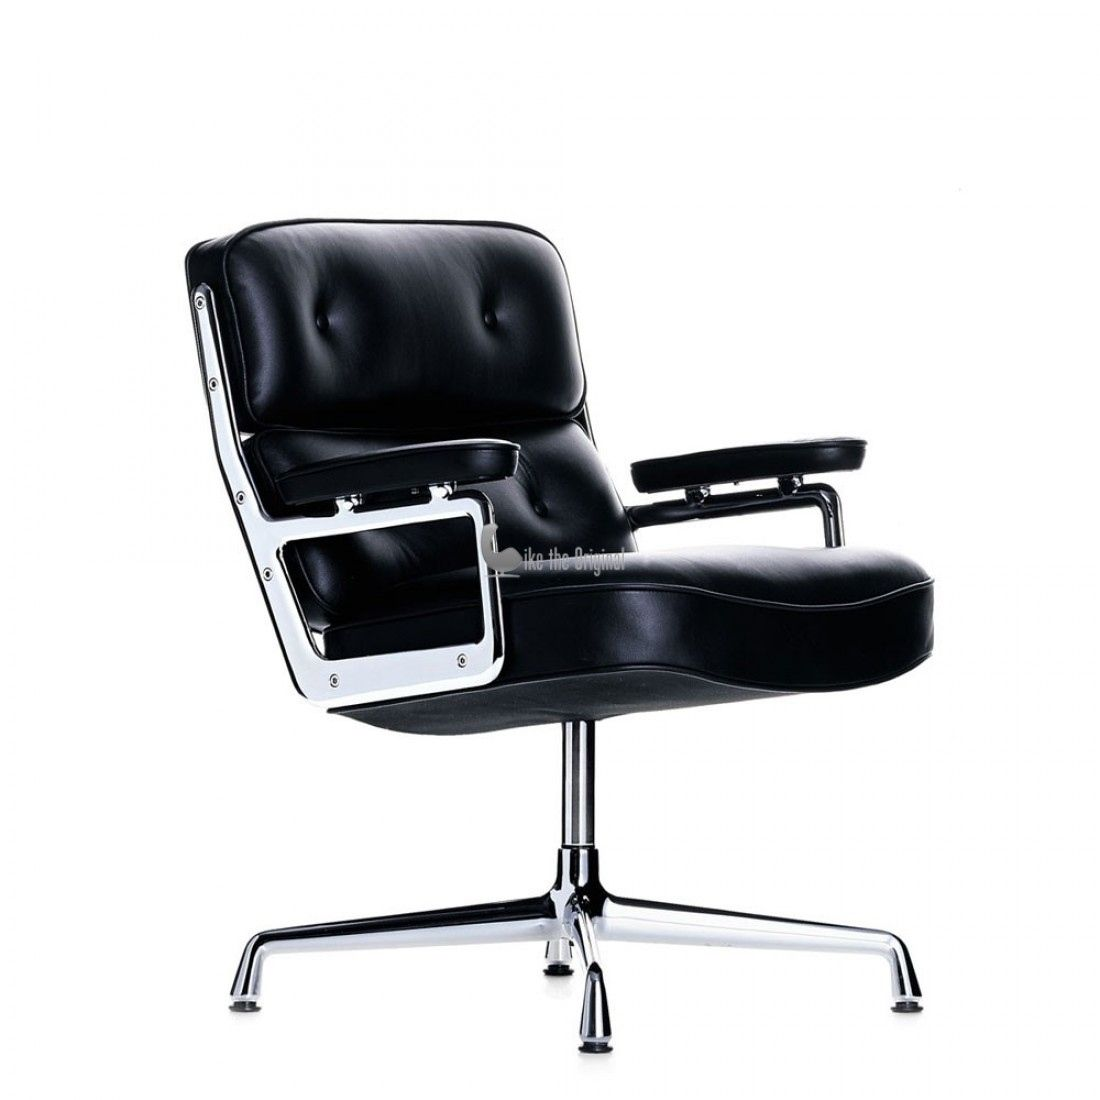 Pollock Executive Chair Replica Blue Bay Hats Eames Rigakublog Com